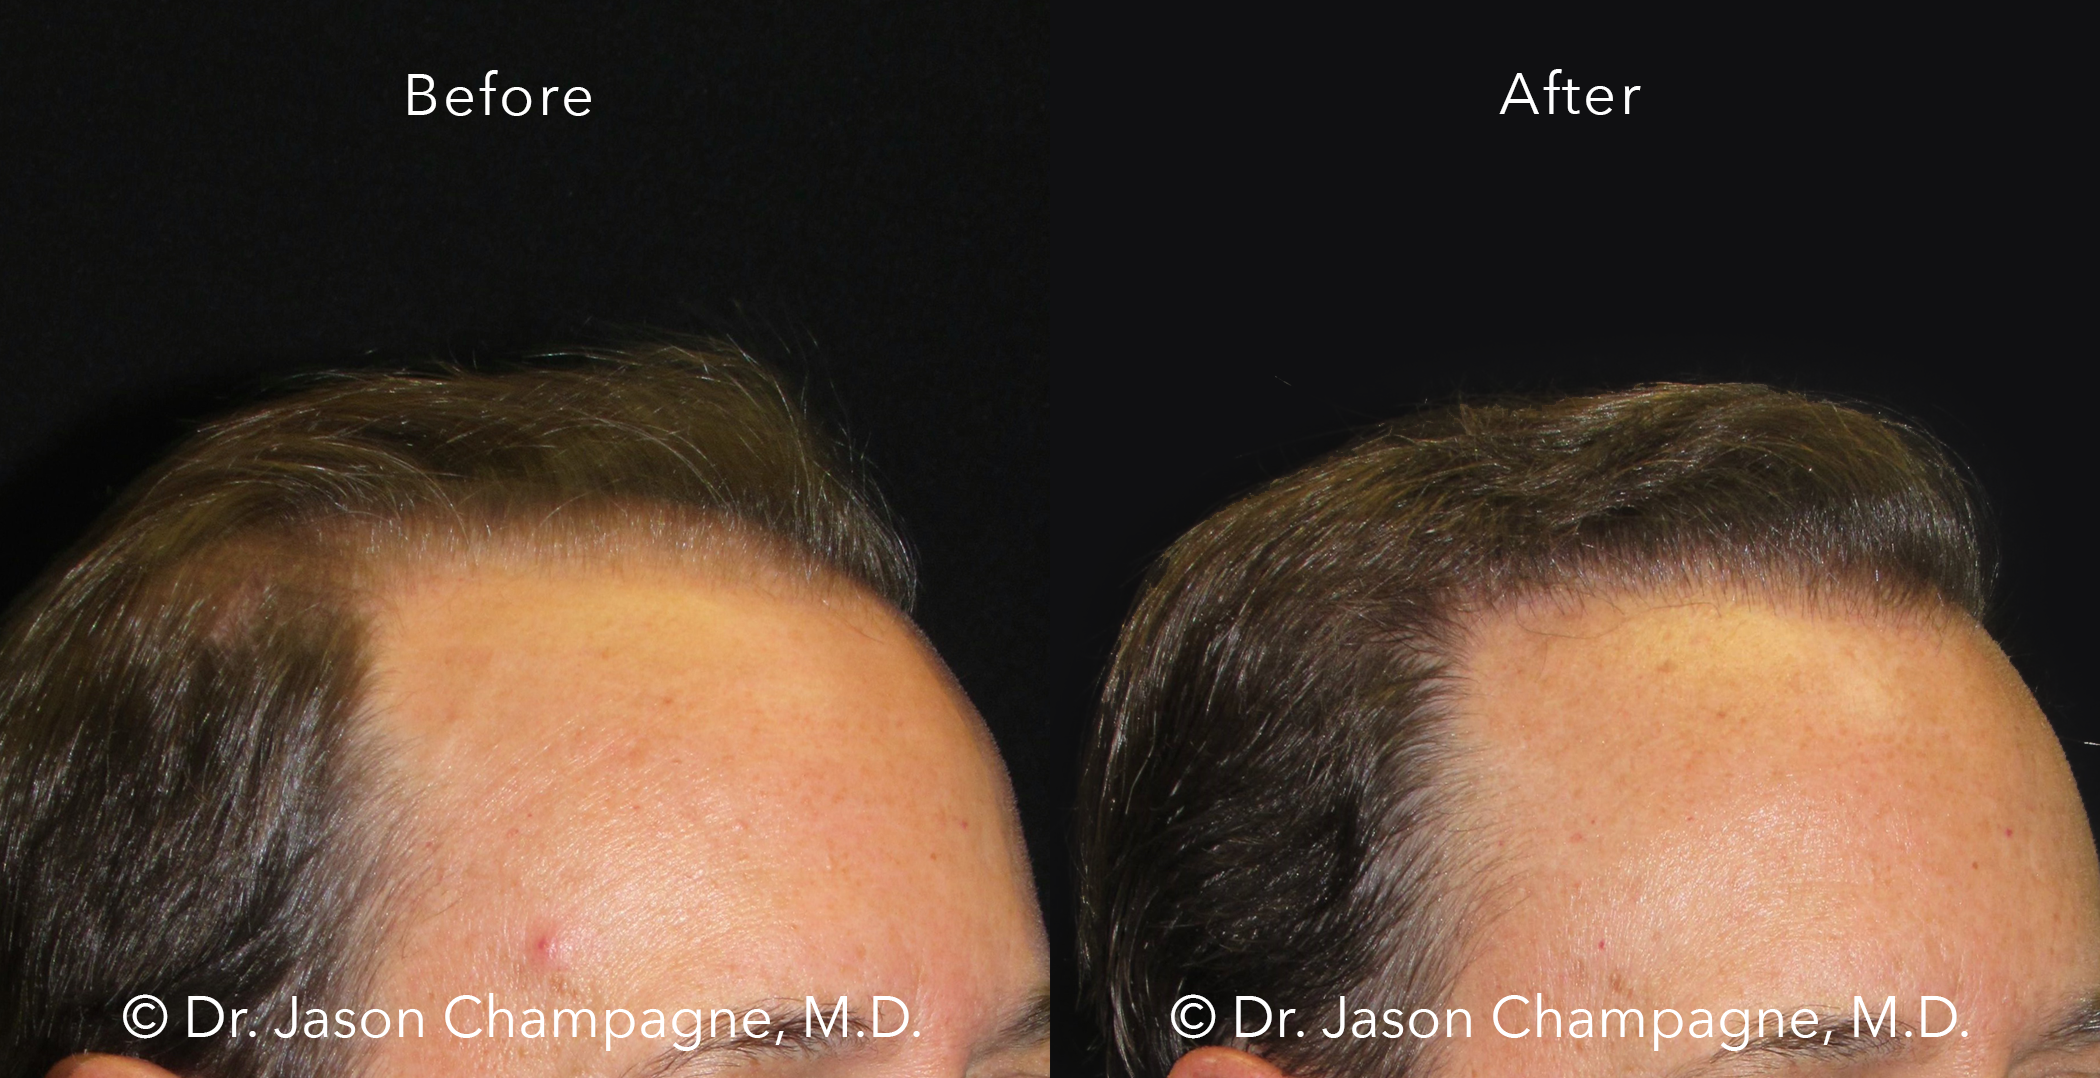 Dr-Jason-Champagne-Hair-Transplant-Before-and-After-3/4-7-26